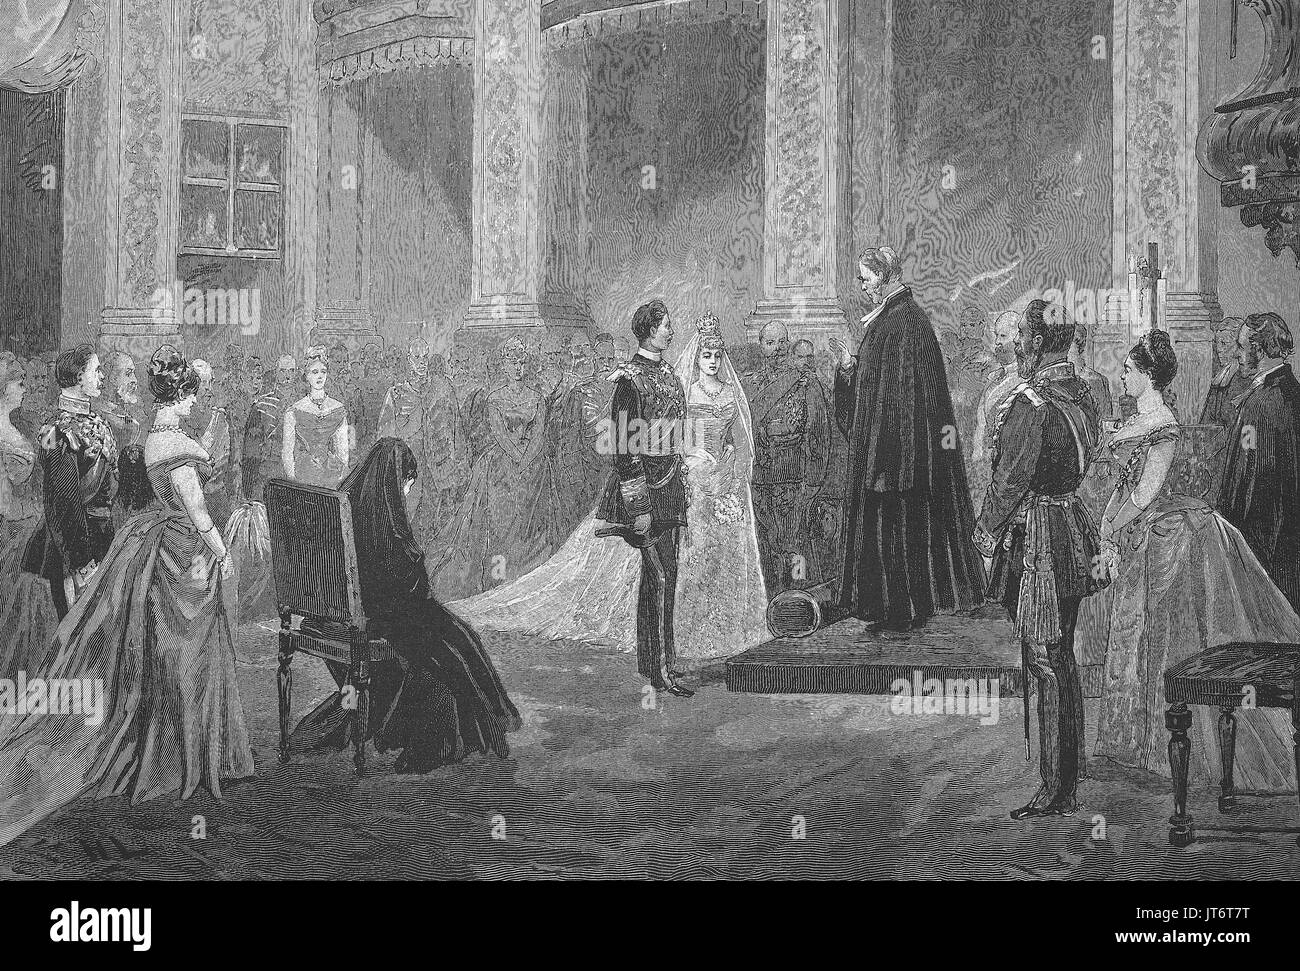 Wedding of Prince Henry of Prussia and Princess Irene of Hesse 1888, in the chapel of palais Charlottenburg, Berlin, Germany, Digital improved reproduction of an image published between 1880 - 1885 Stock Photo